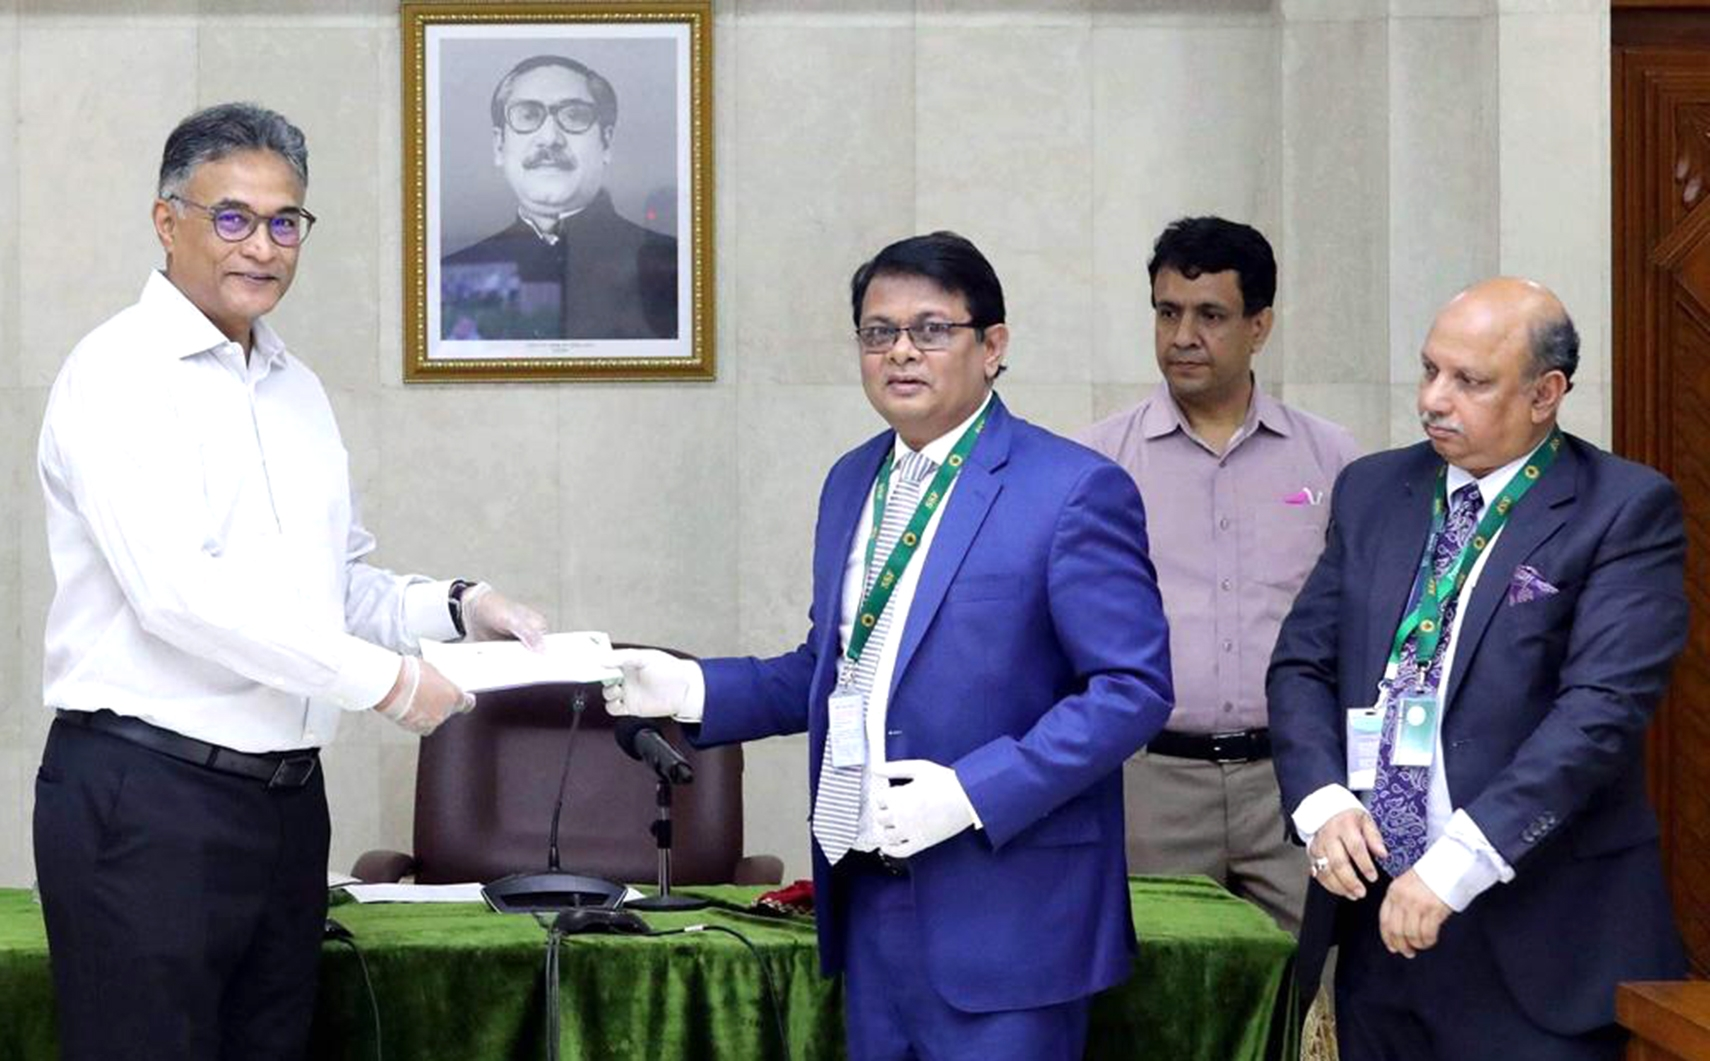 M. Reazul Karim, Managing Director of Premier Bank Limited, handing over a cheque of Tk. 5 crore to the Prime Minister's relief fund to combat the spreading of Covid-19 to Ahmad Kaikaus, Principal Secretary of Prime Minister at PMO recently. Syed Nowsher Ali, DMD of the bank, was also present.